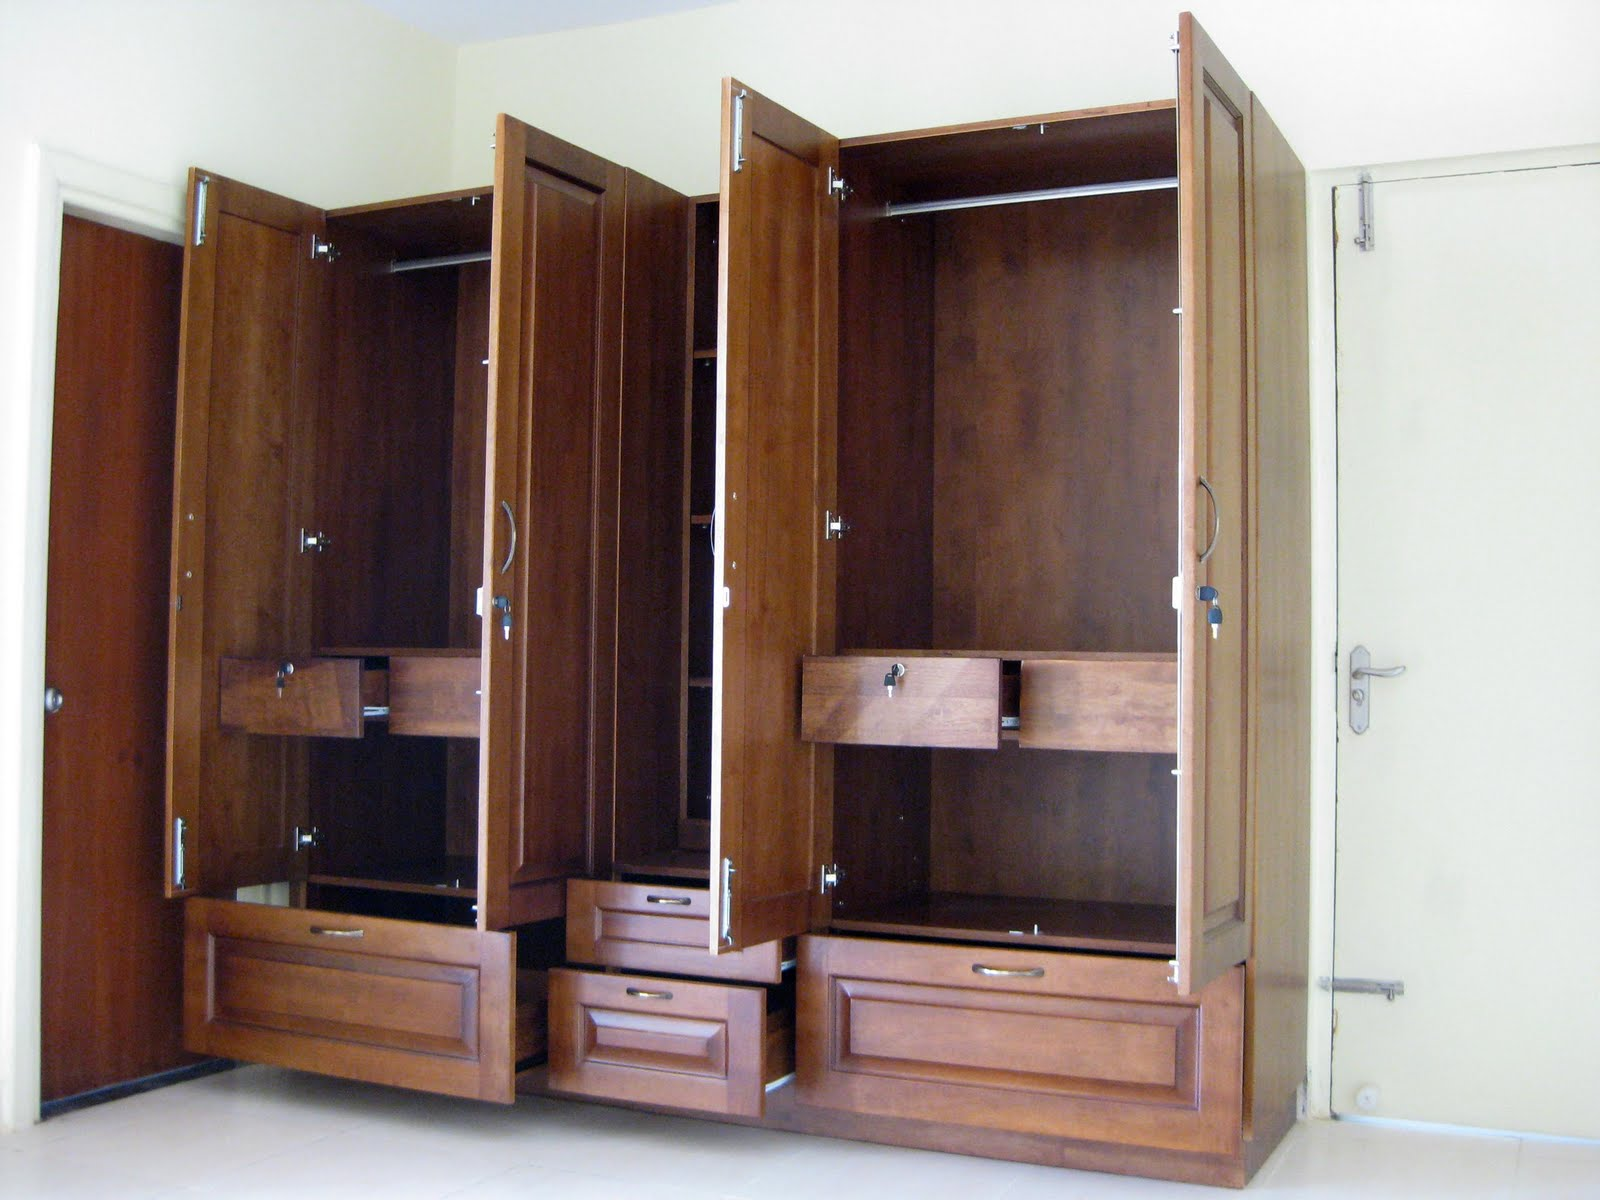 Picture of: Wardrobe with tall mirror